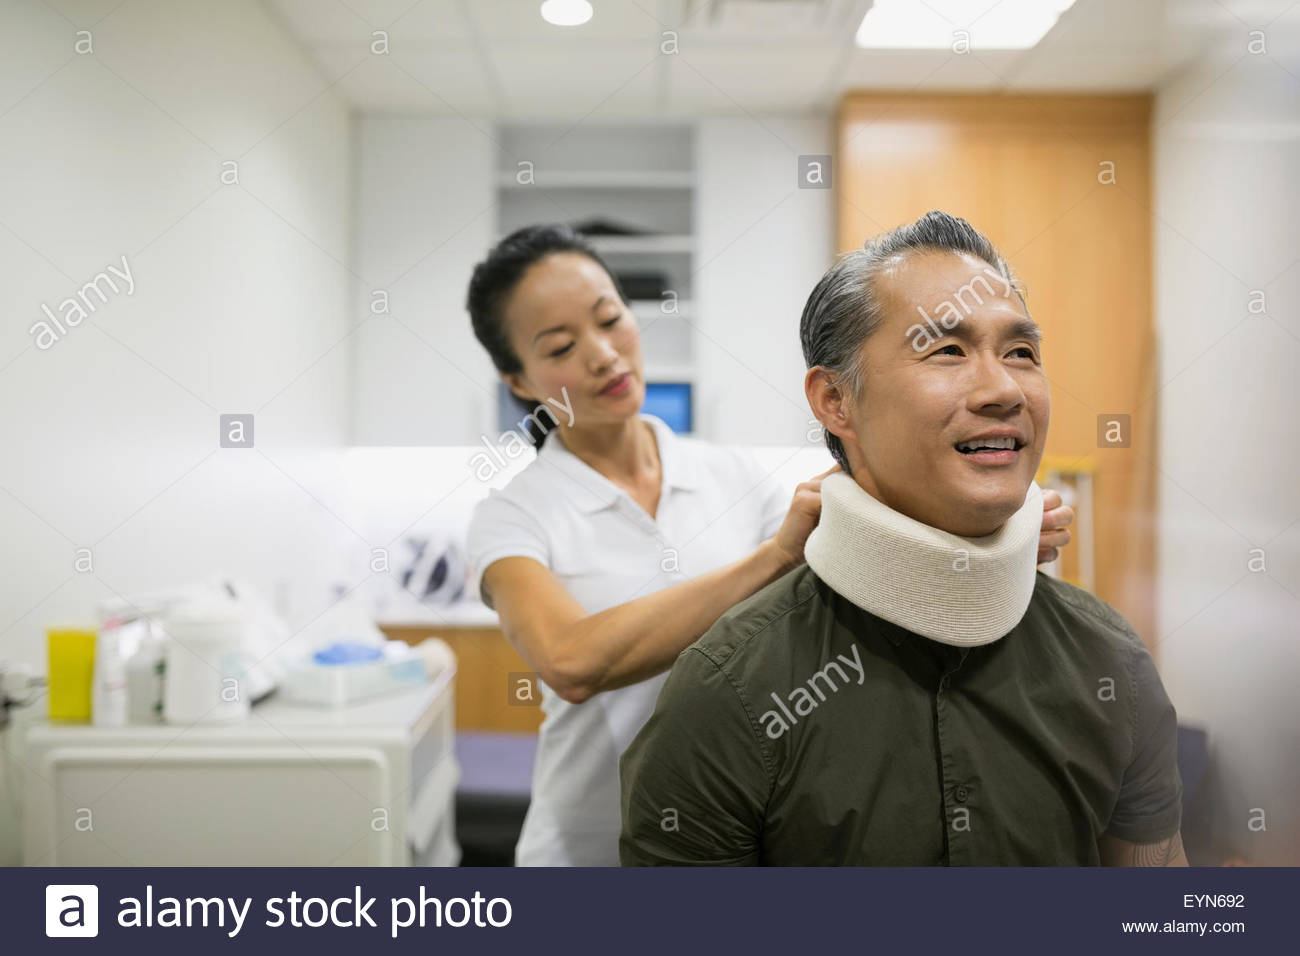 Physical therapist placing neck brace on patient - Stock Image